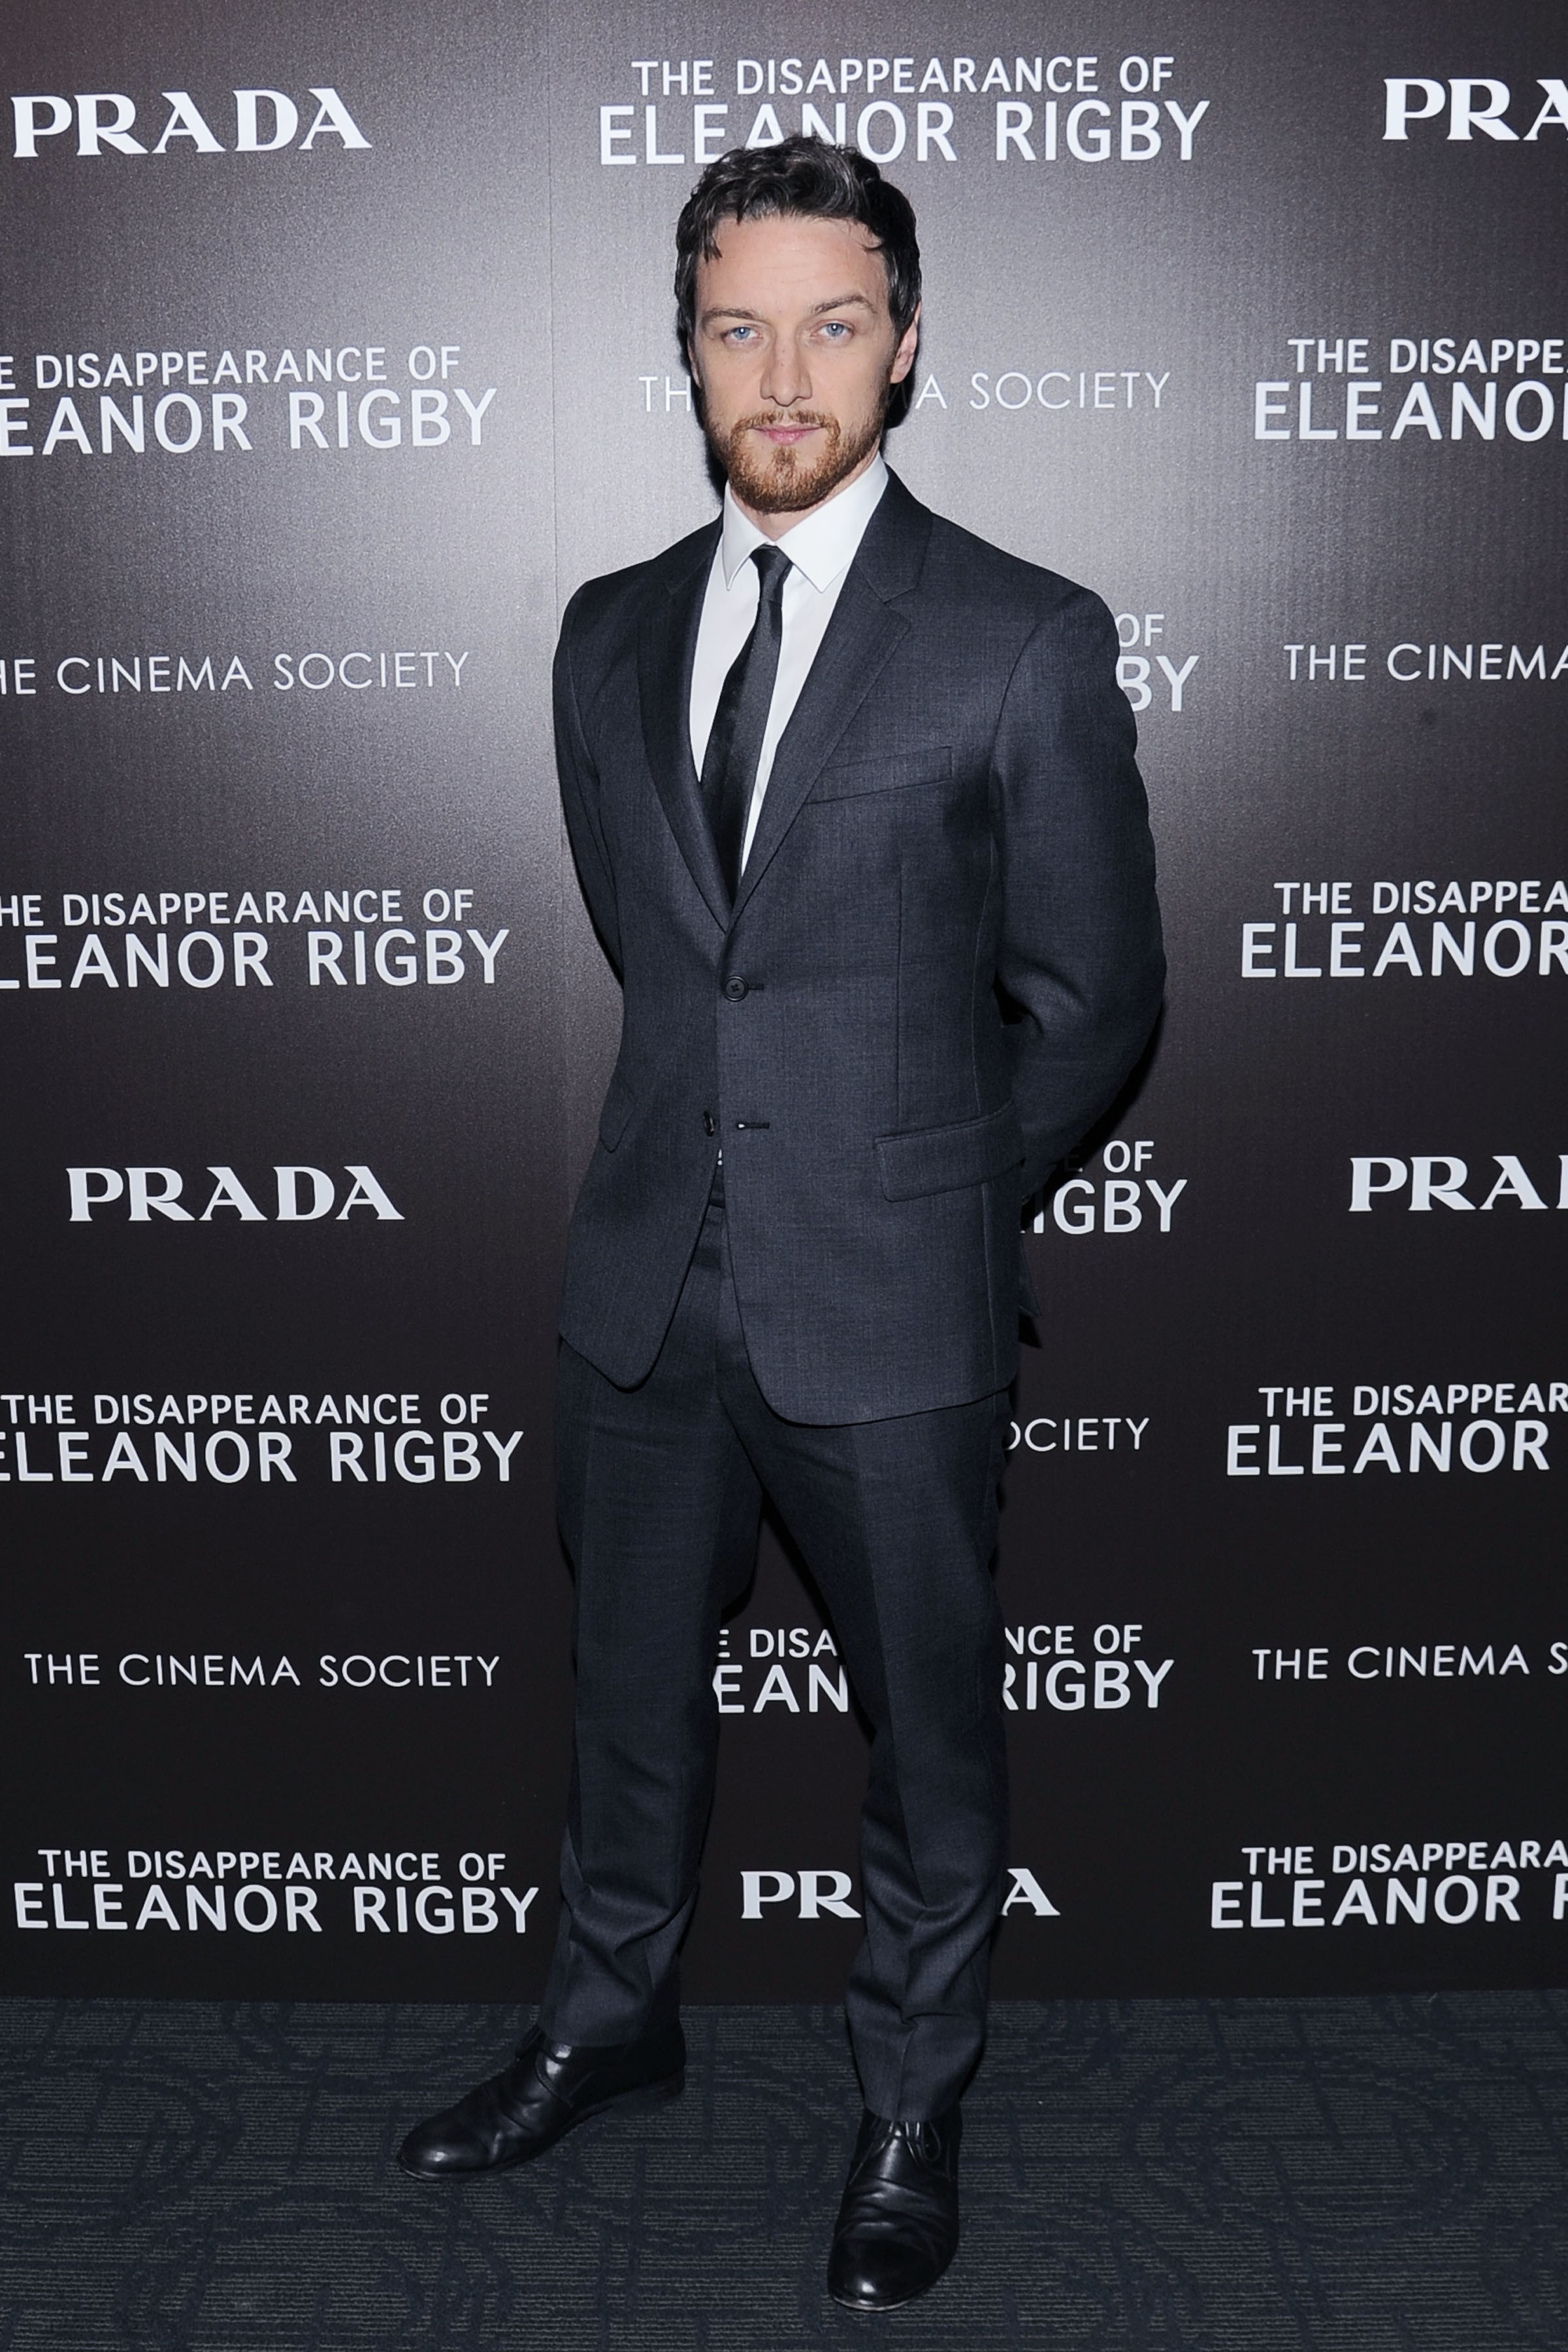 James McAvoy Wears Prada Suit to 'The Disappearance of Eleanor Rigby' Screening